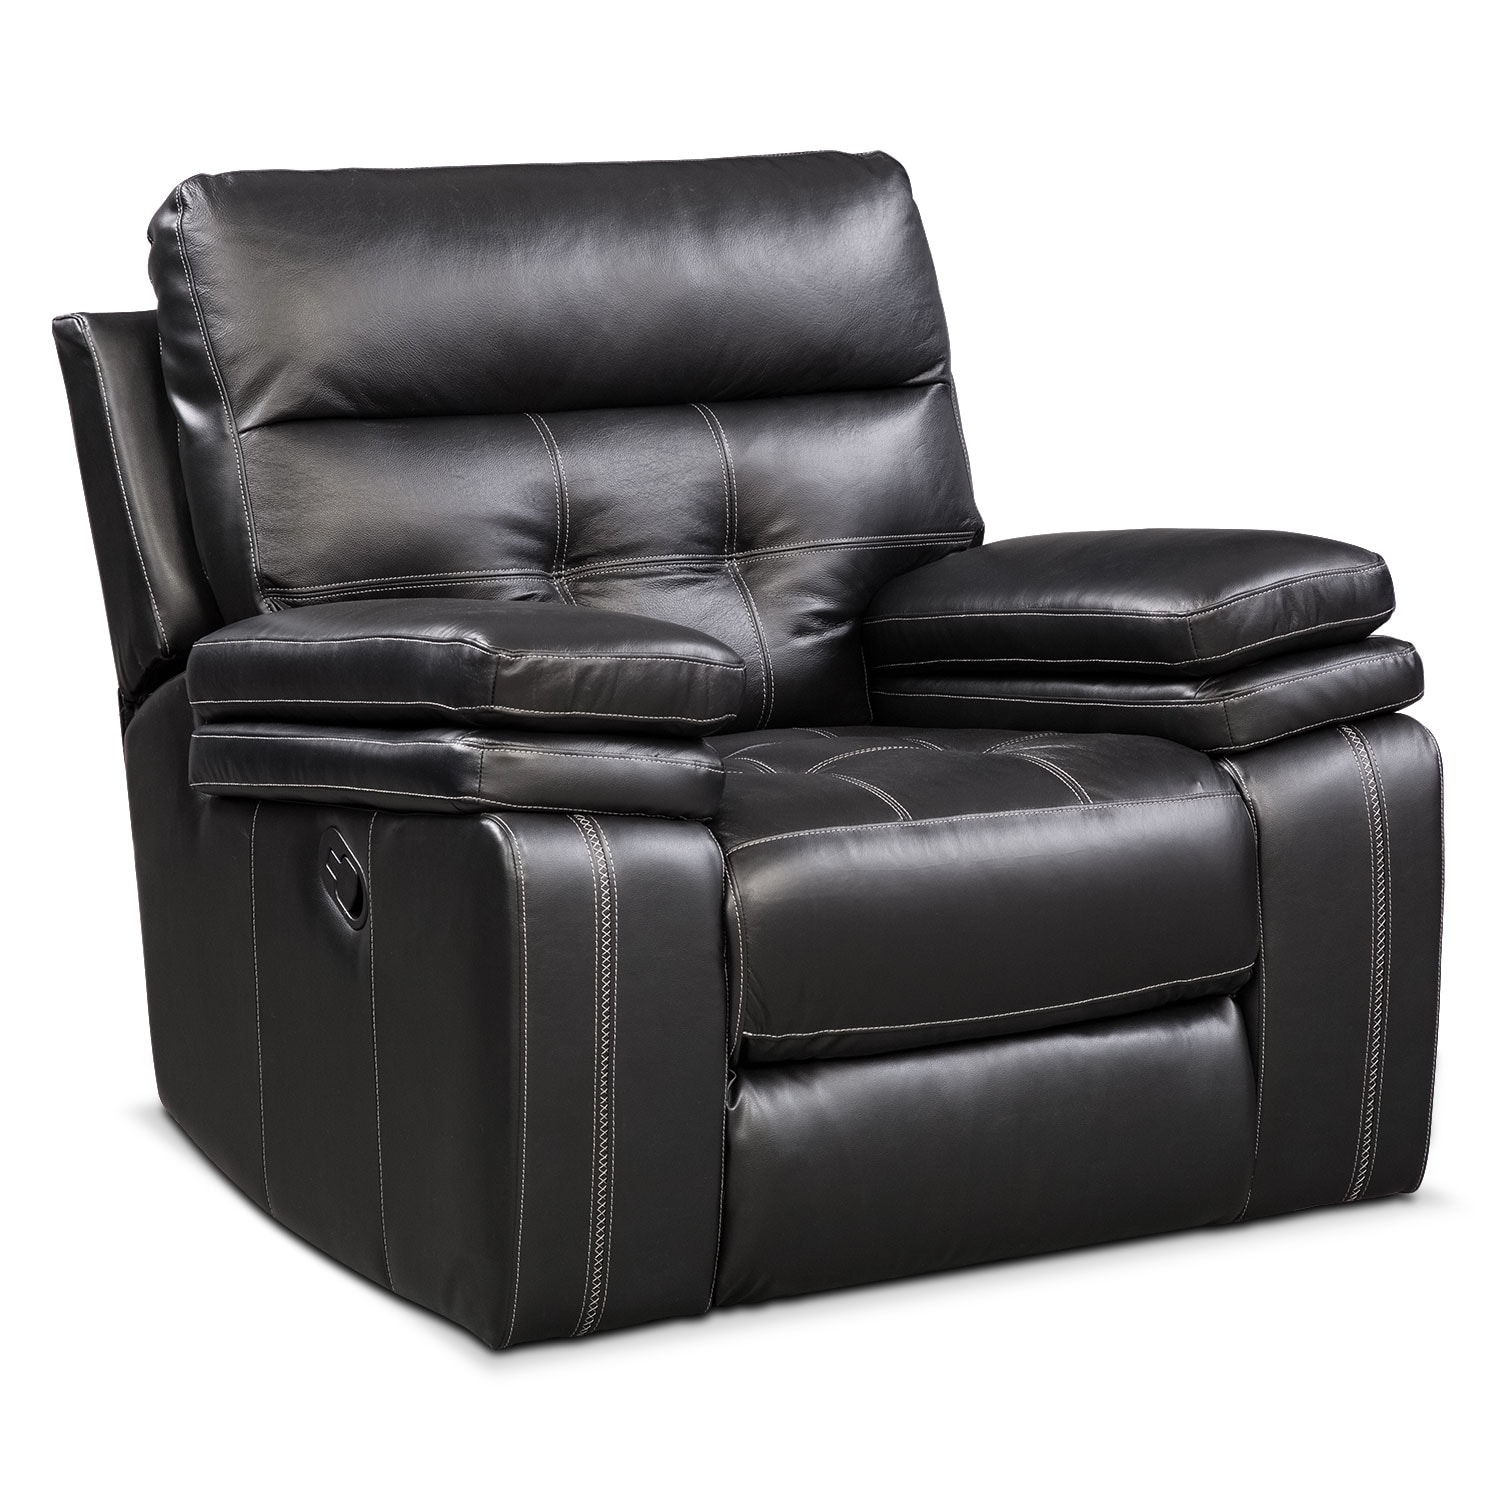 [Brisco Black Manual Recliner]